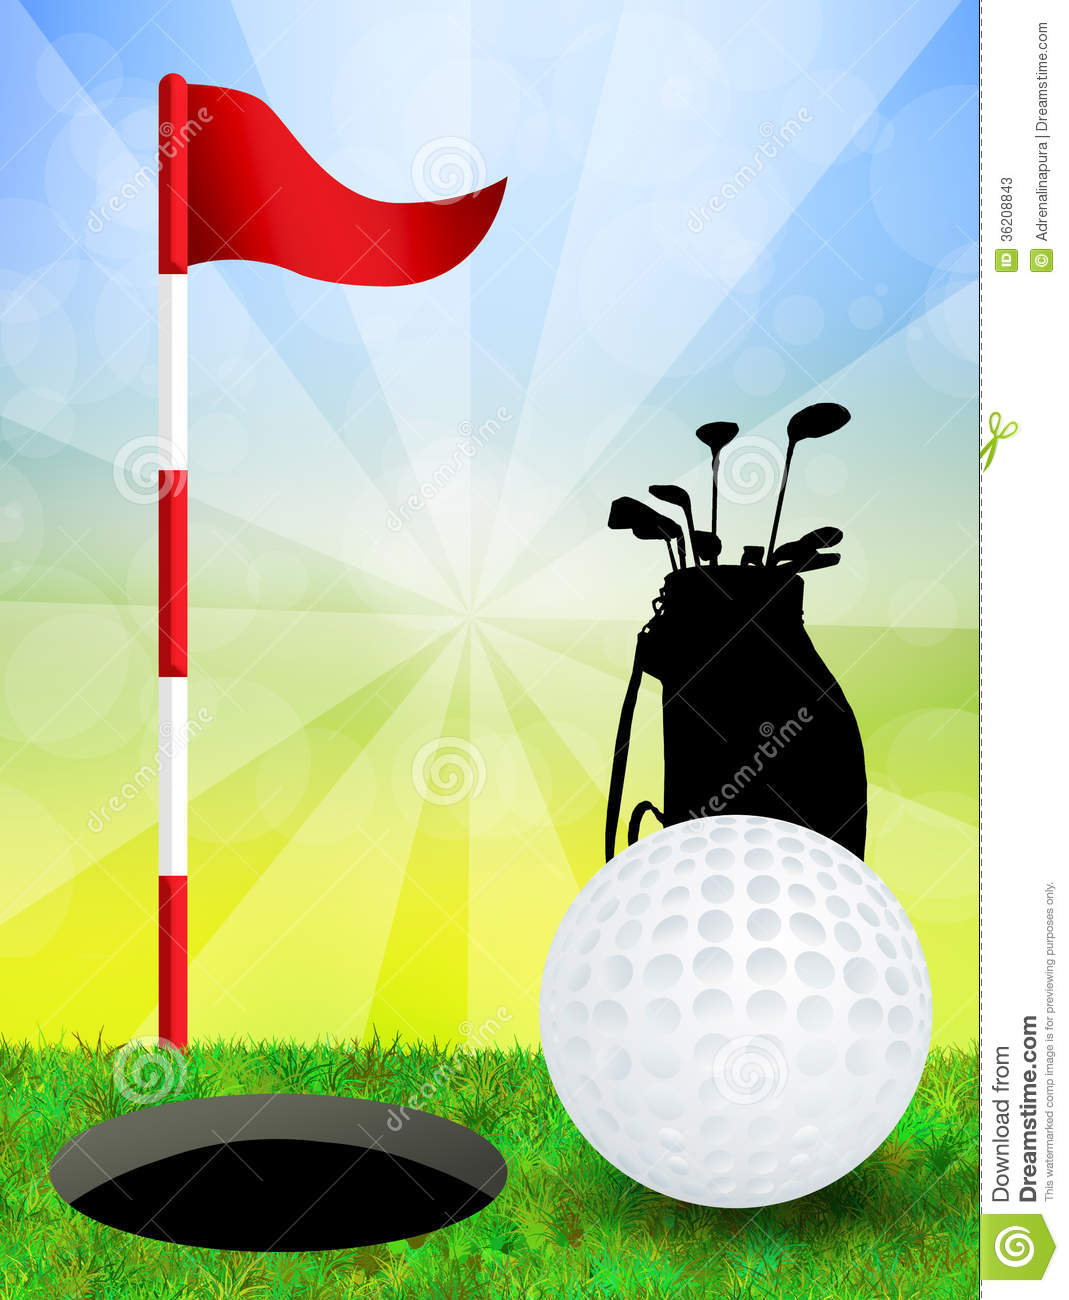 Vintage Golf Stock Photos Images Royalty Free Vintage